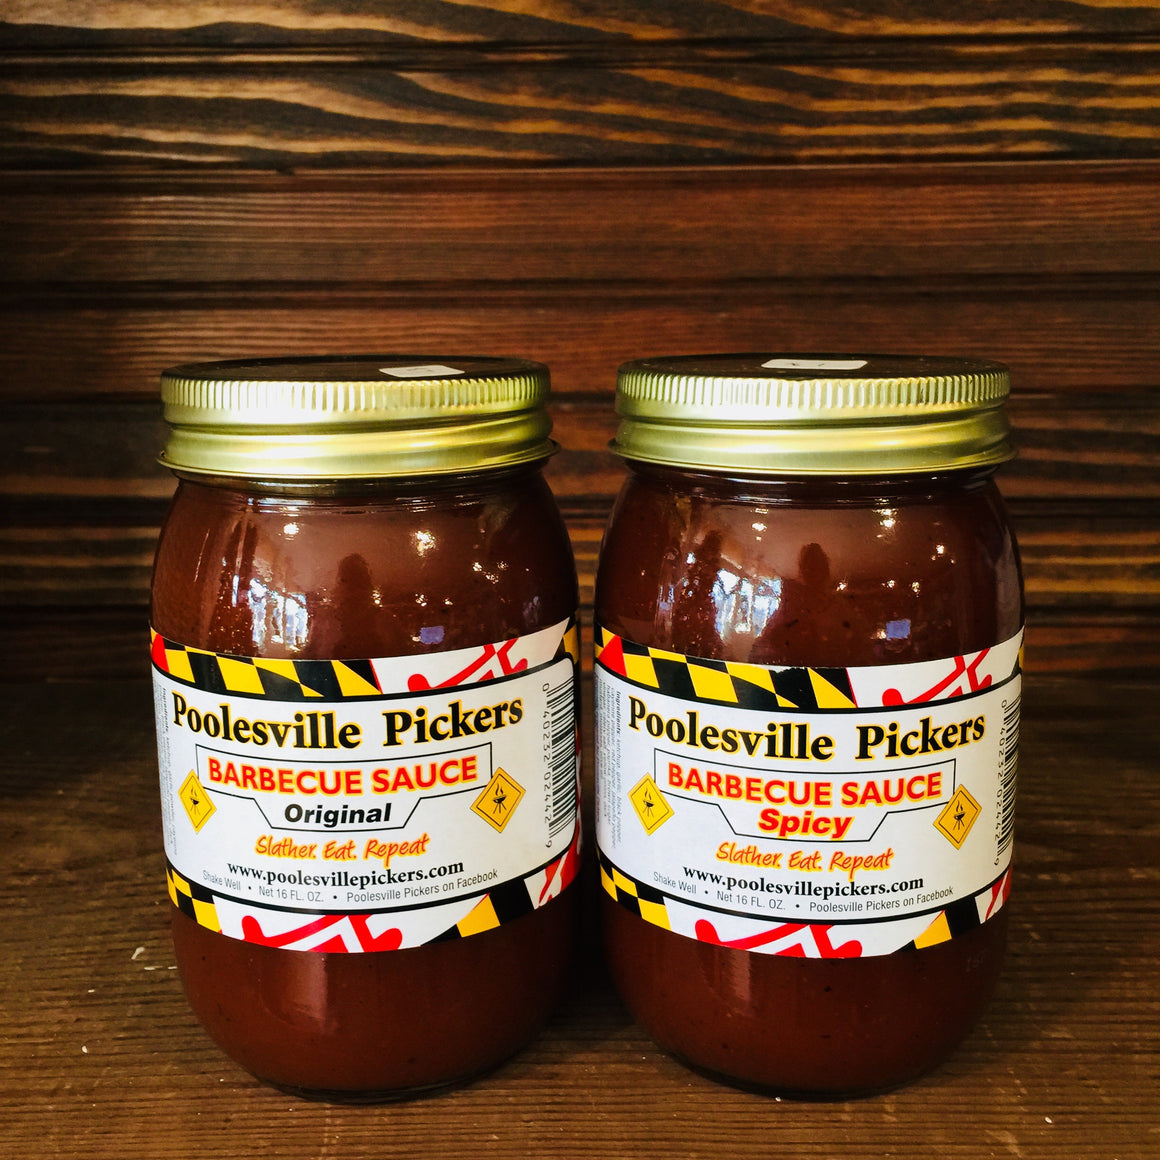 Poolesville Pickers BBQ Sauces